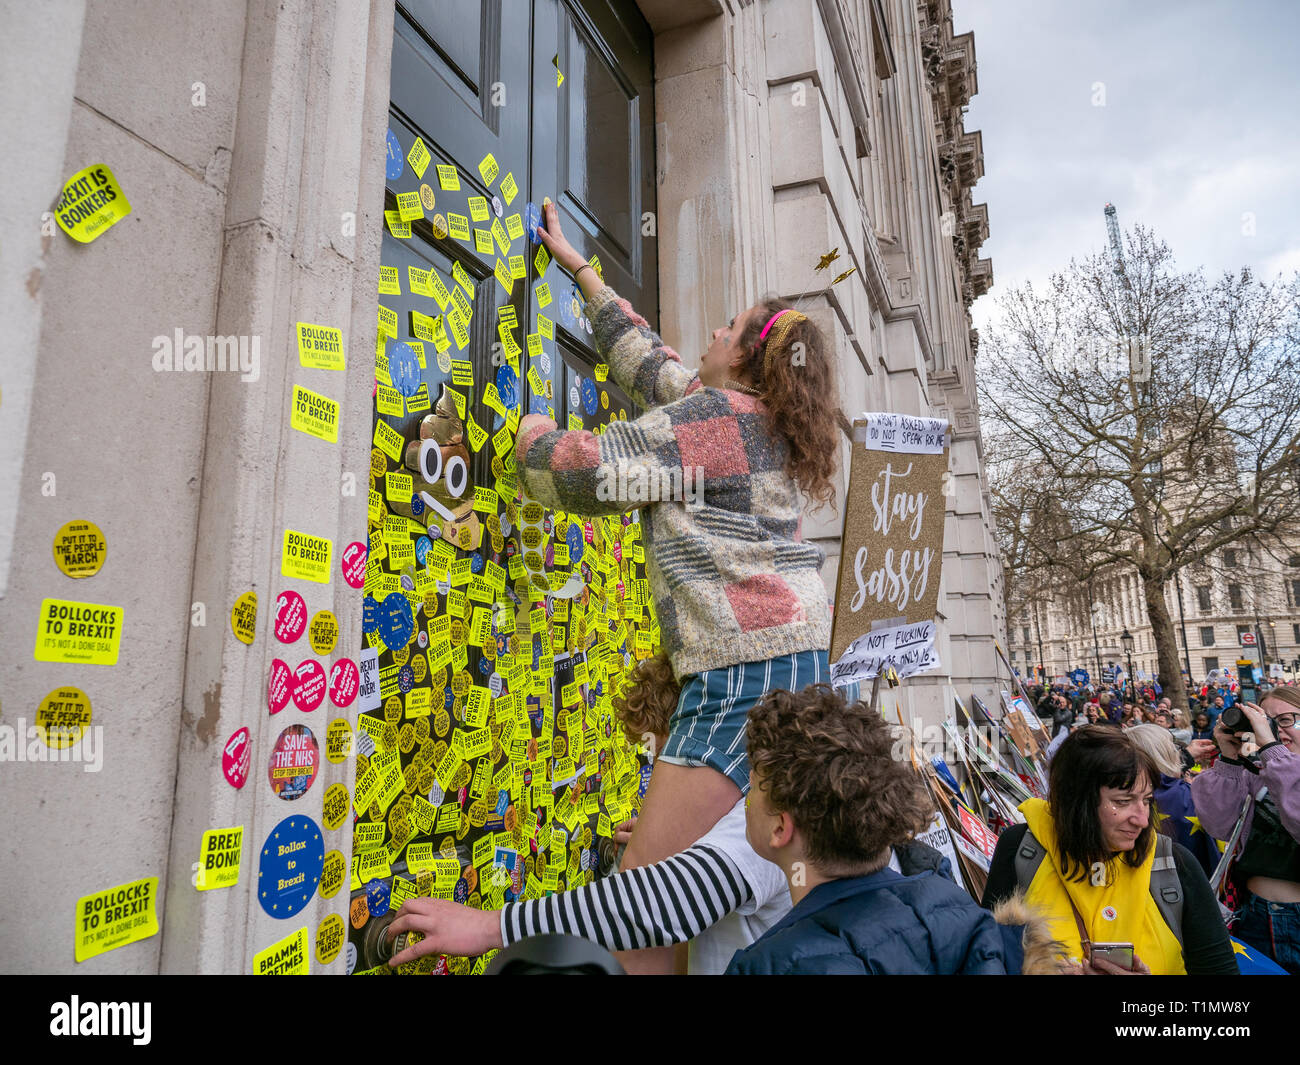 Demonstrators putting anti Brexit stickers on door of Cabinet Office building during the People's Vote march, 23 March 2019, Whitehall, London, UK - Stock Image